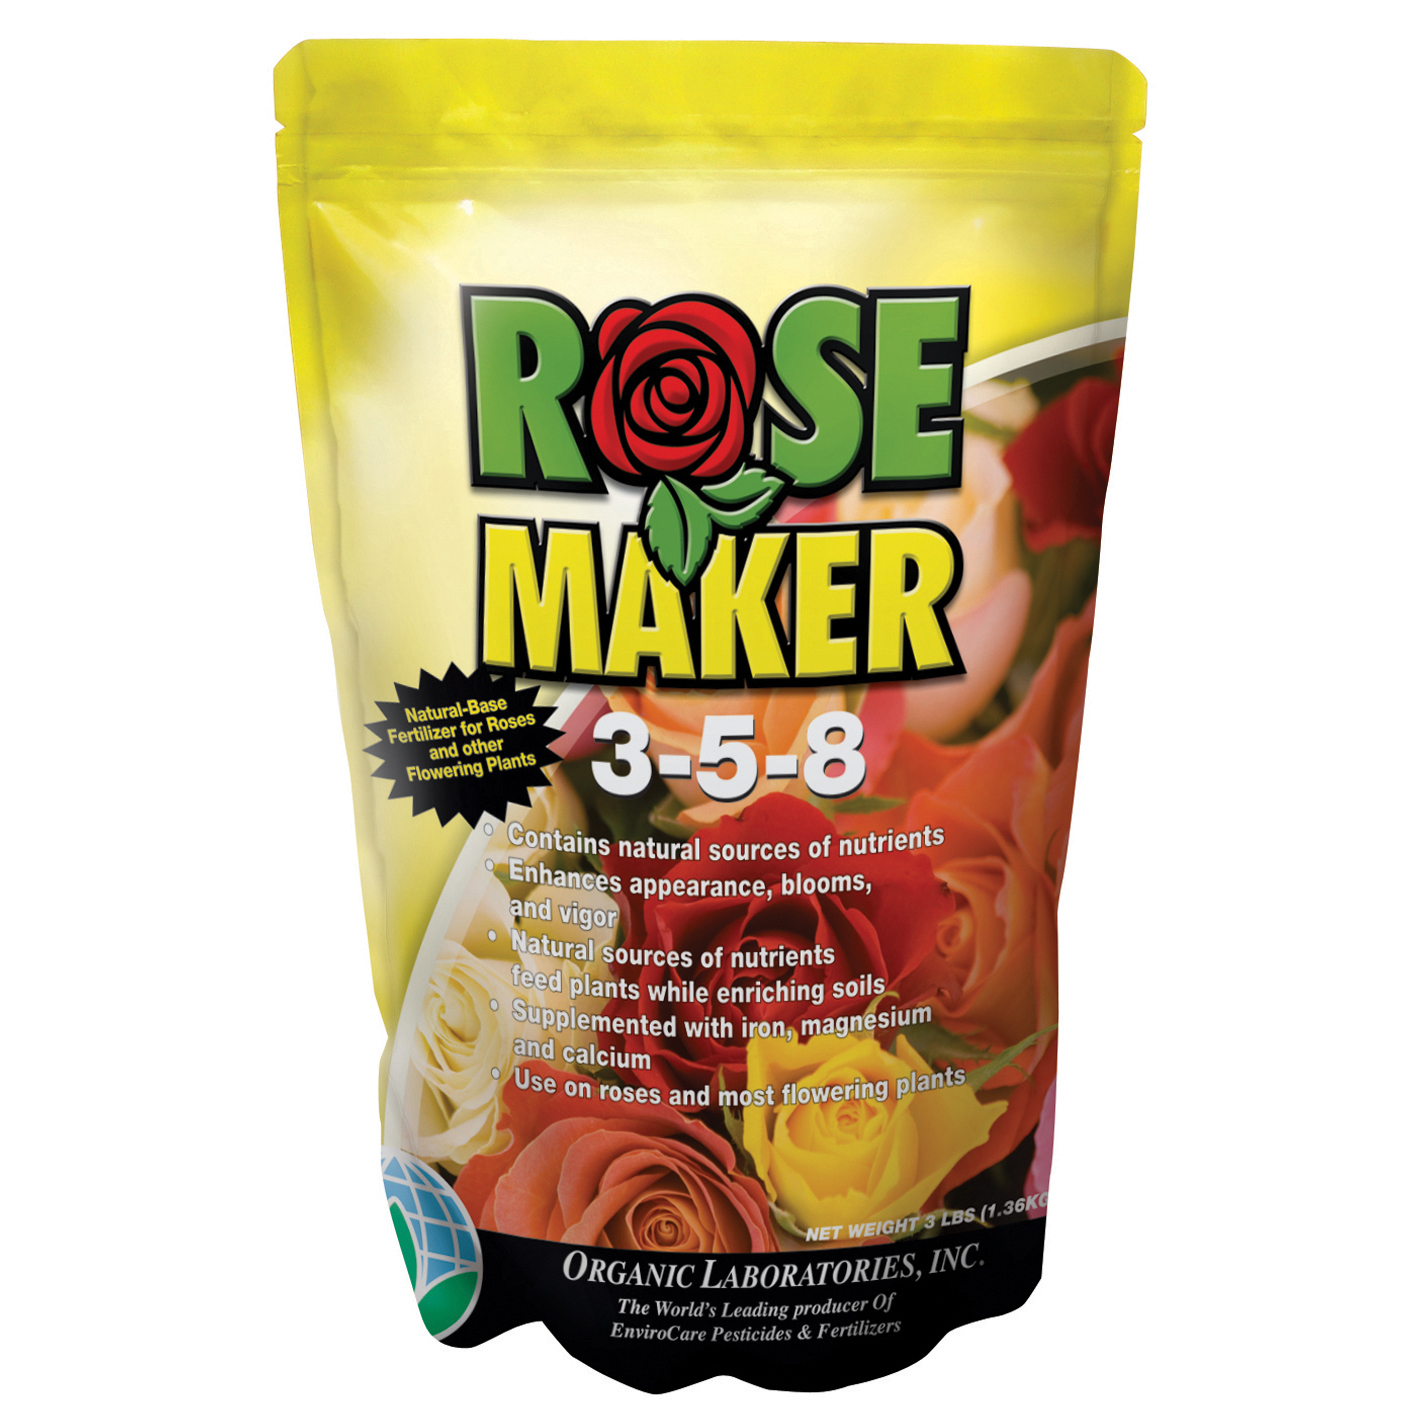 Organic Laboratories Inc Organic Lab 3lb Rose Maker Fertilizer & Soil Conditioner at Sears.com